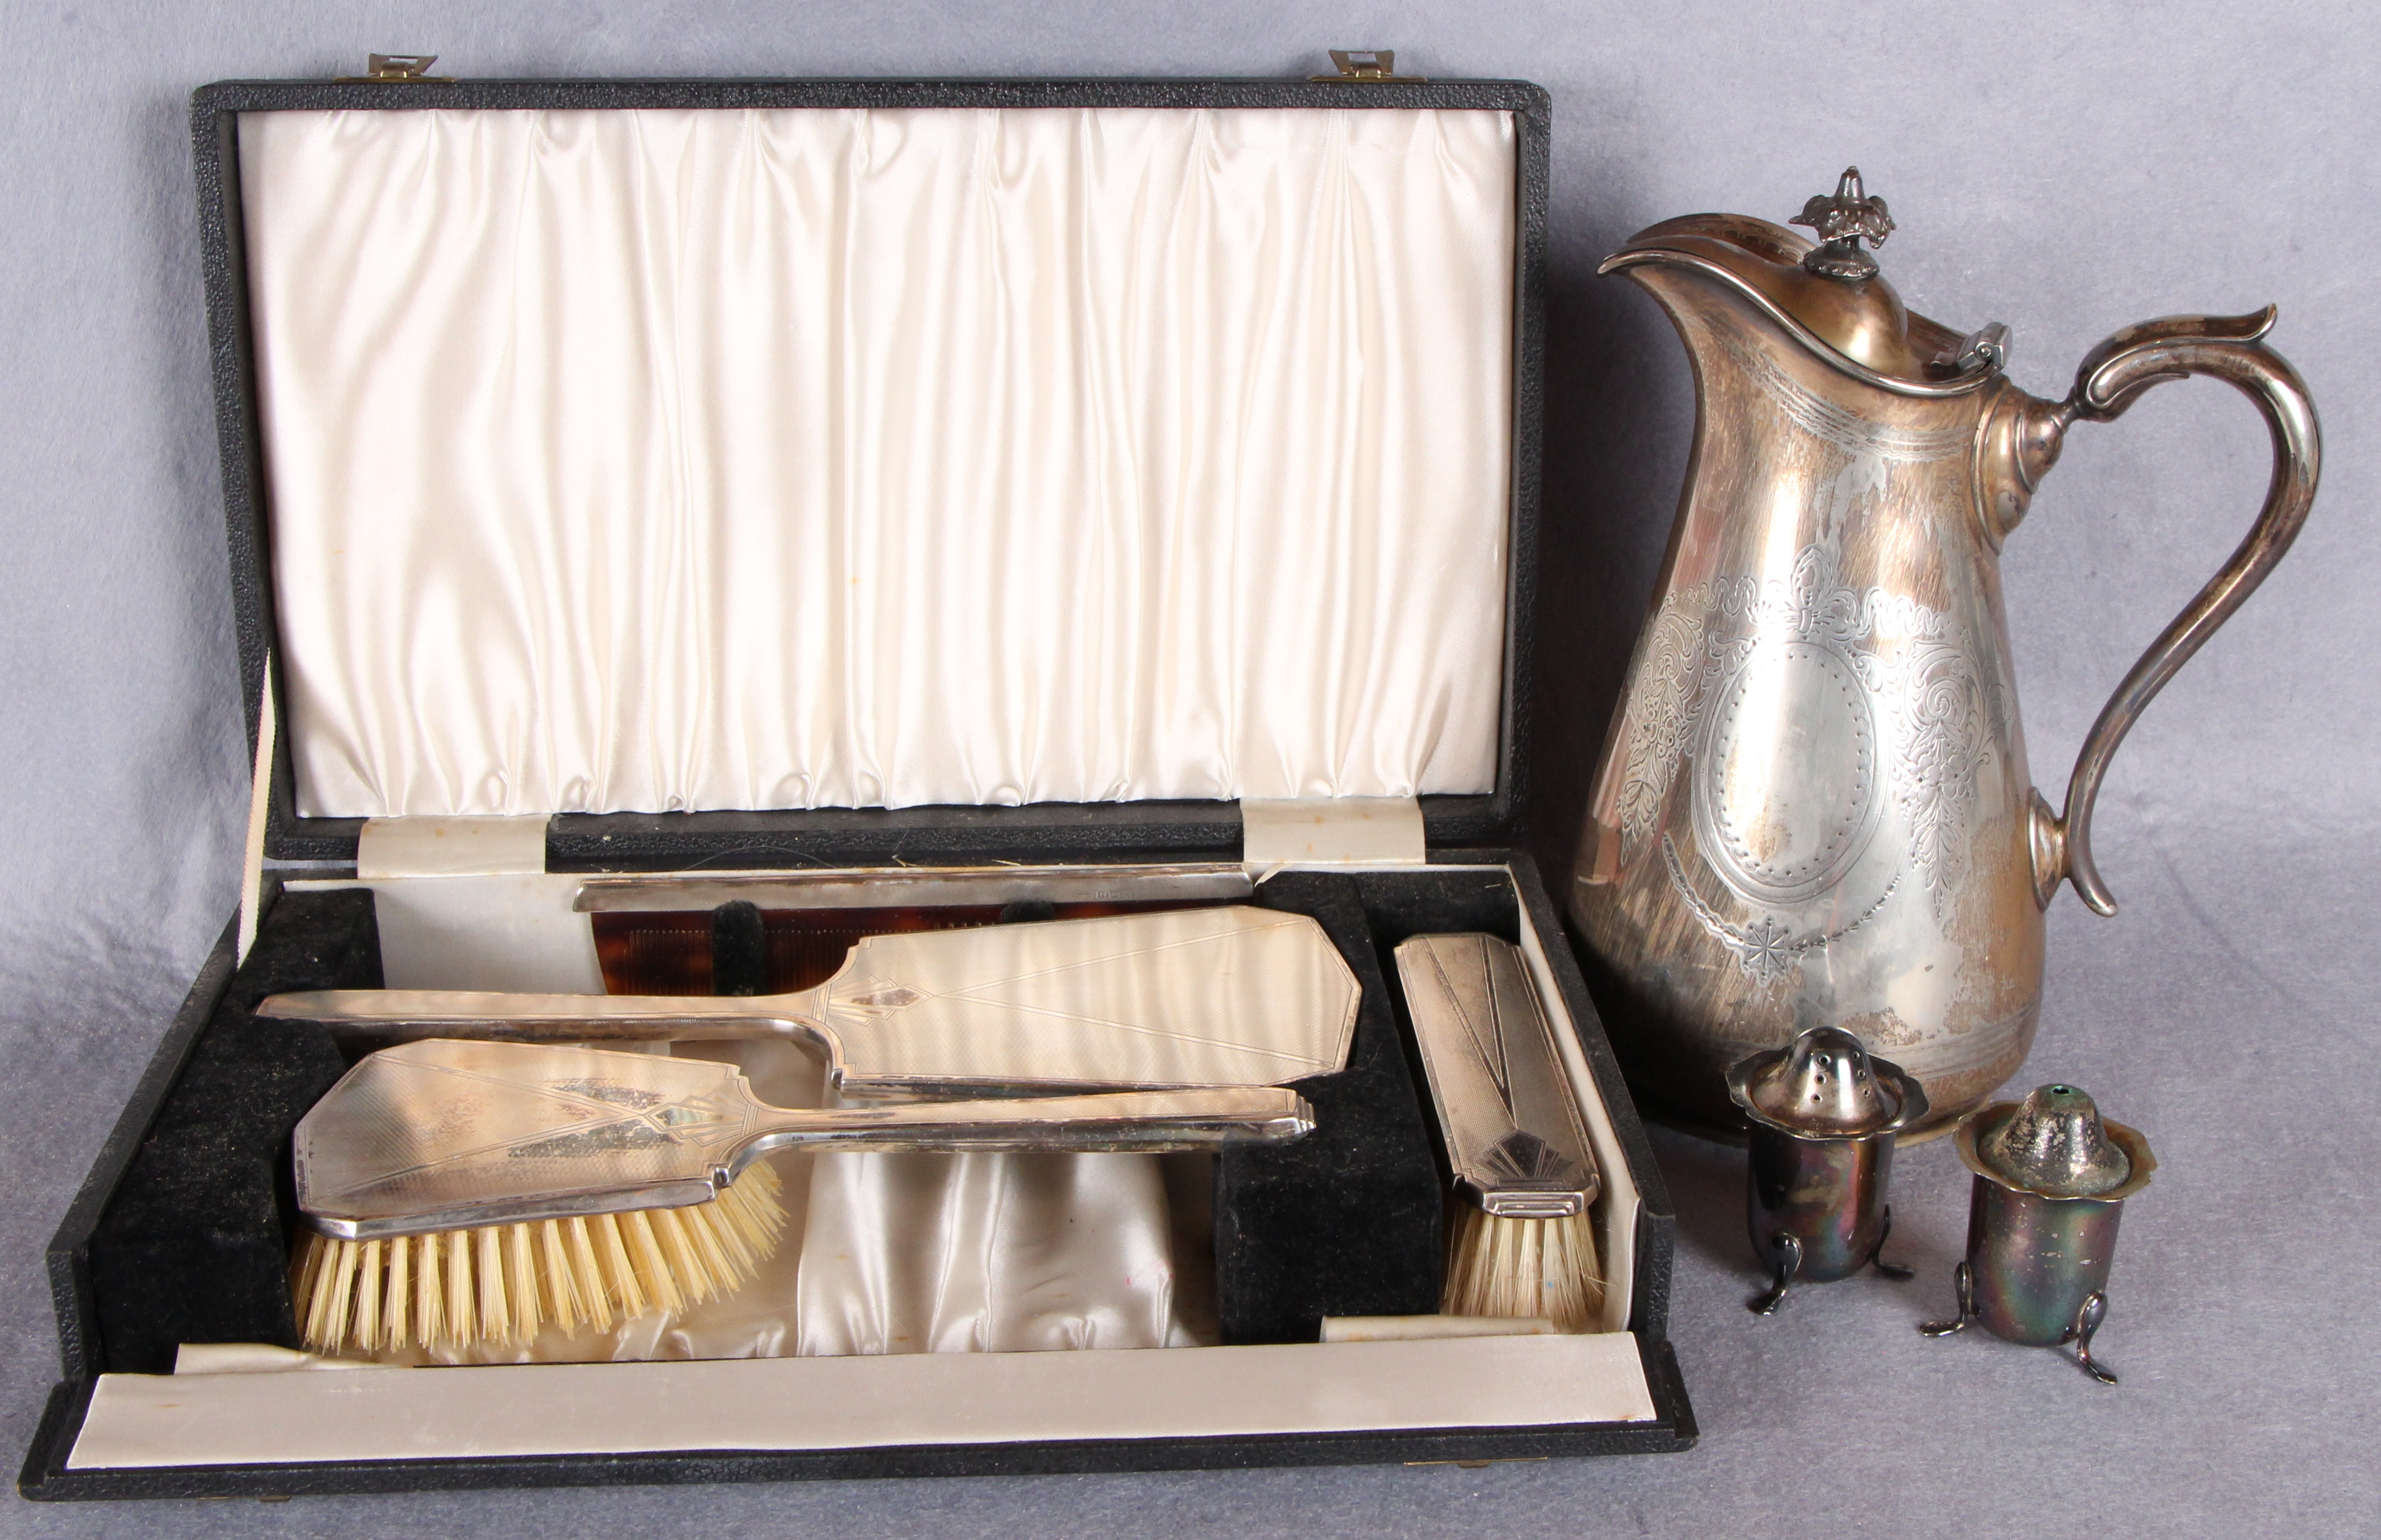 Lot 37 - A three piece engine engraved silver-mounted dressing table set comprising two brushes and a hand